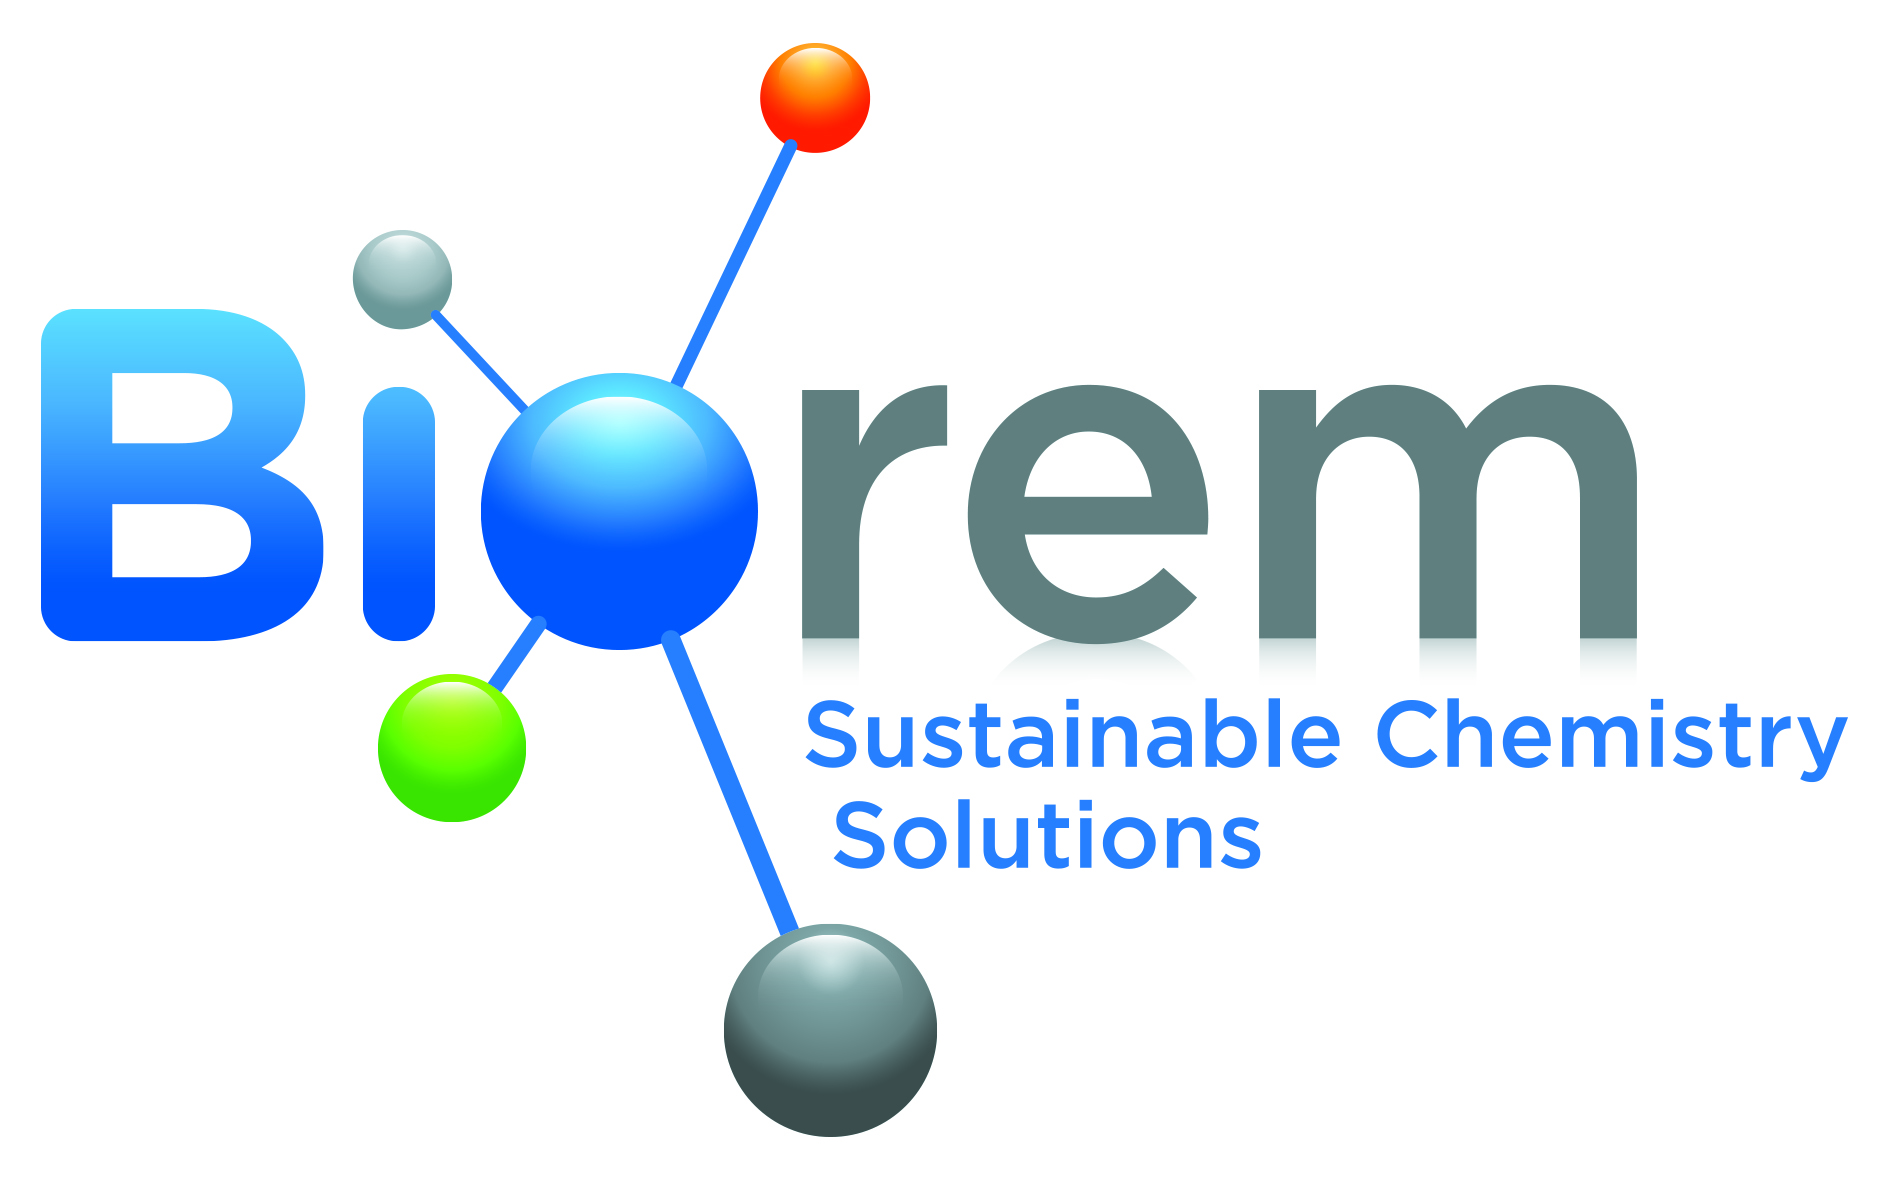 The alliance of green chemistry and white biotechnology